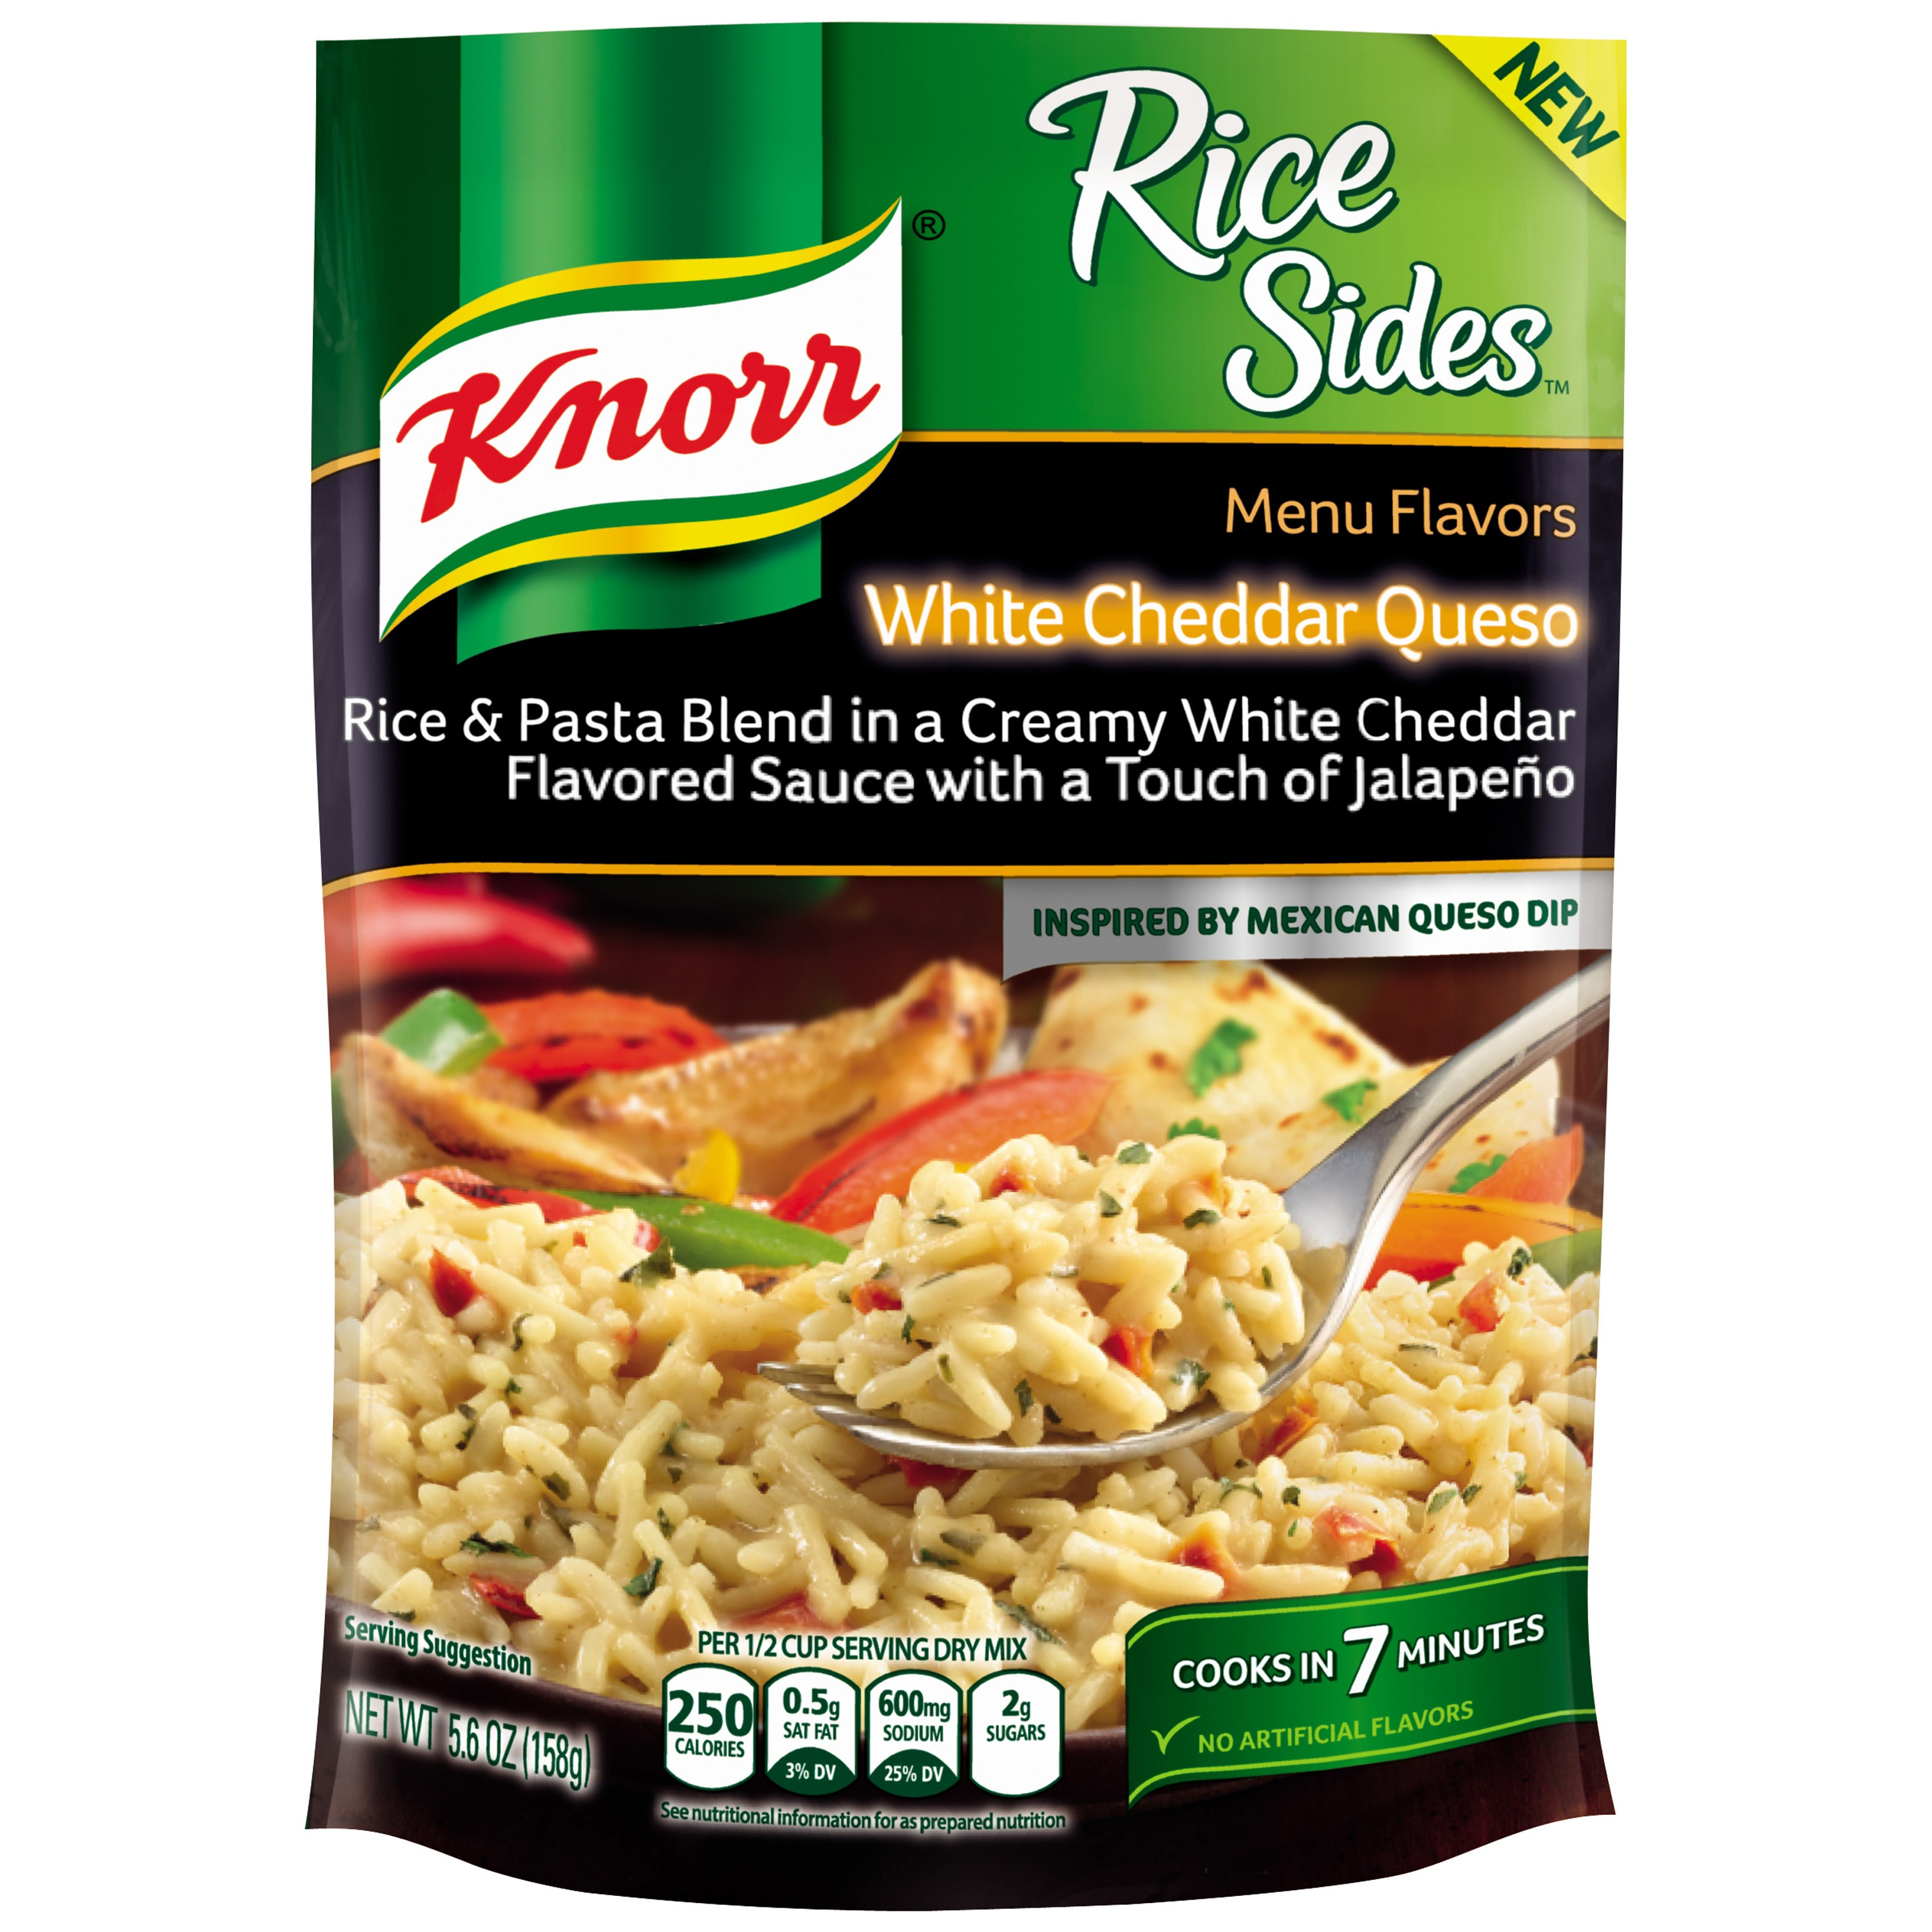 Knorr Menu Flavors White Cheddar Queso Rice Sides, 5.6 Oz by Unilever